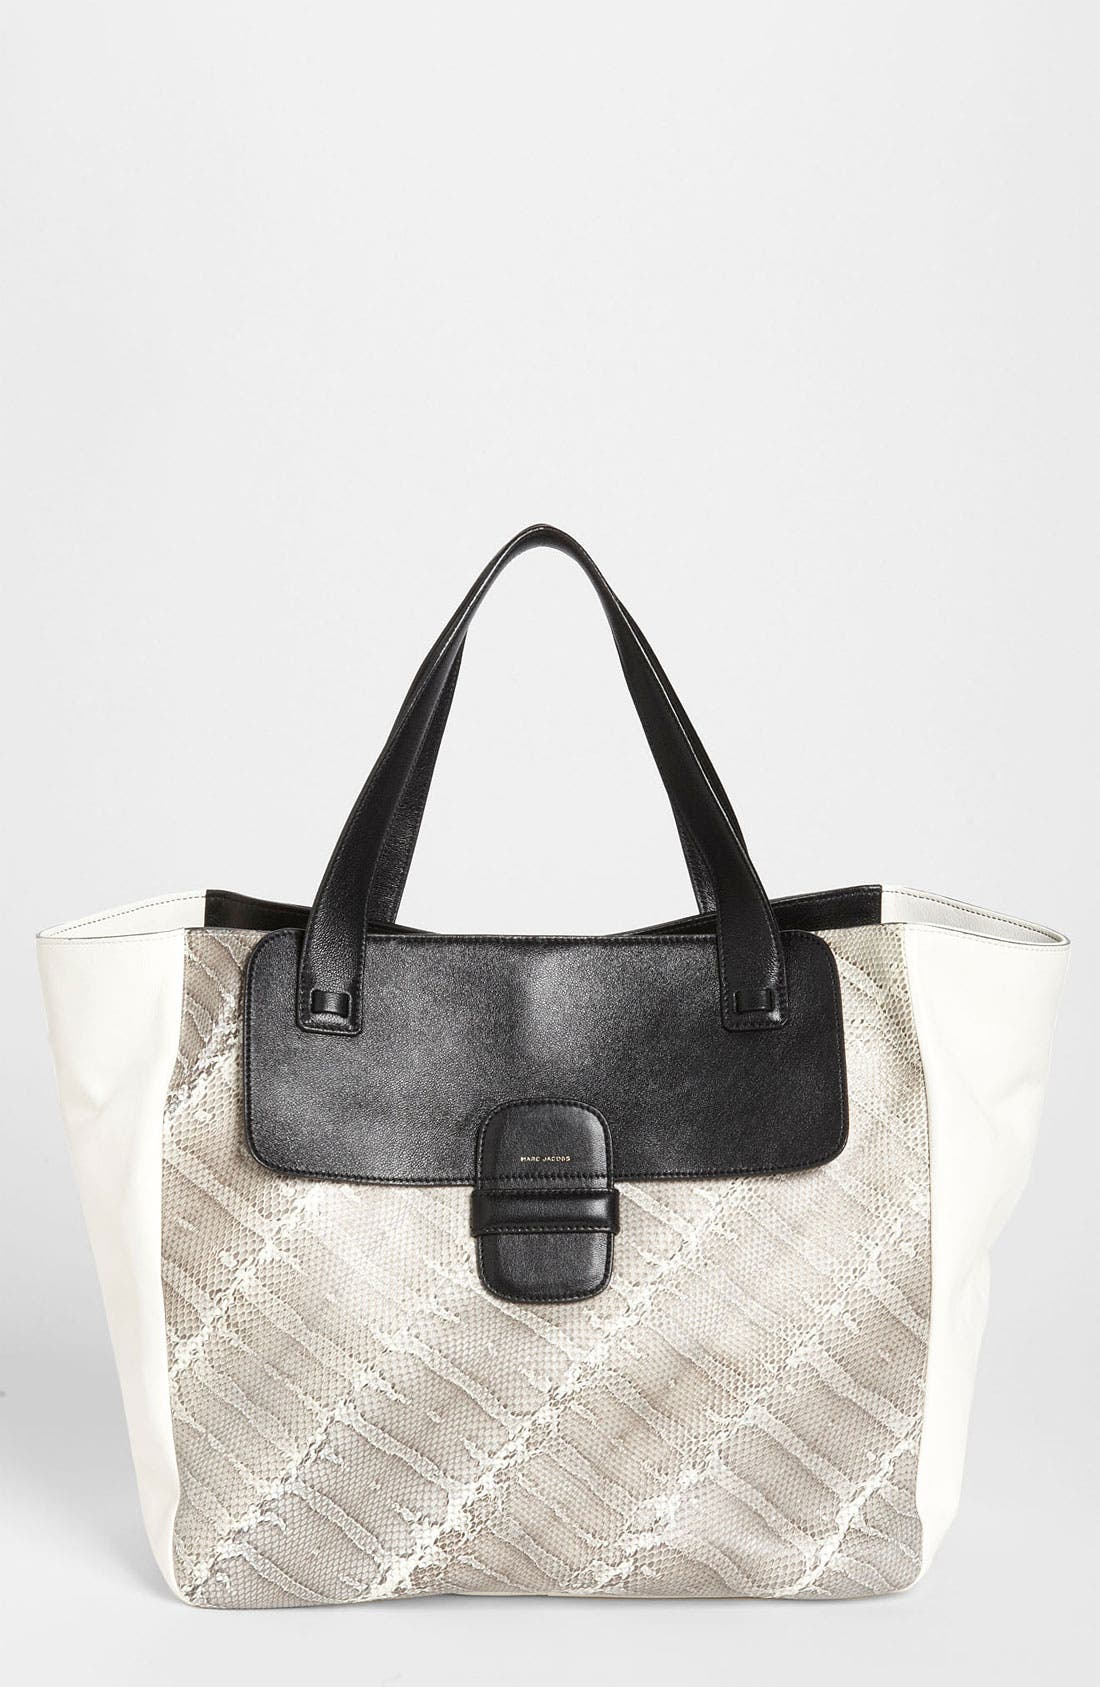 Main Image - MARC JACOBS 'Khaki' Snakeskin & Leather Tote